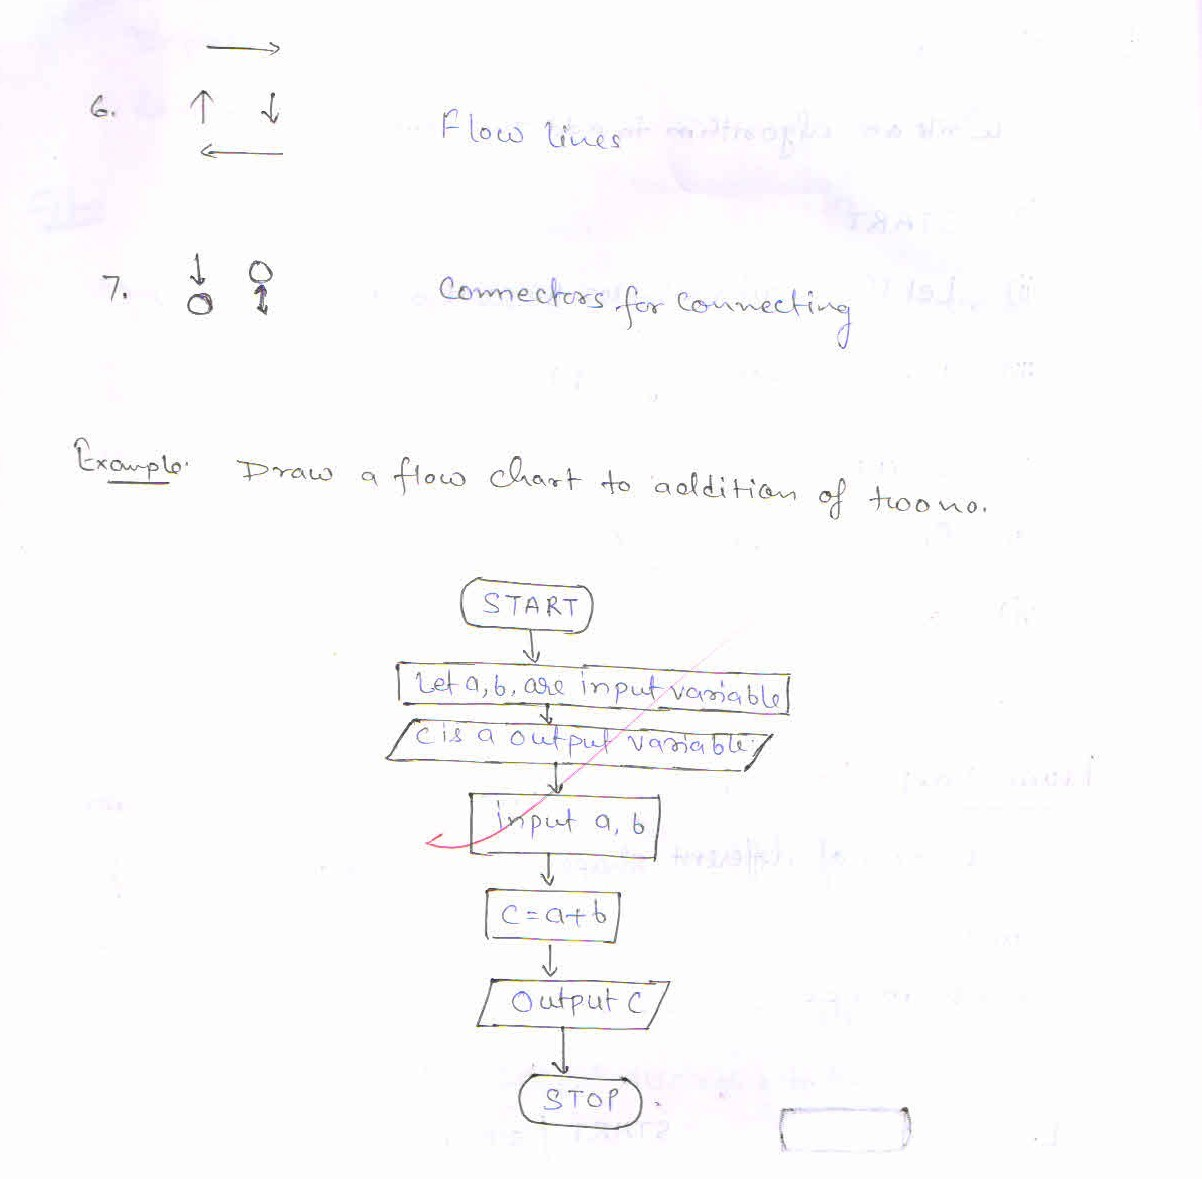 define algorithm and flow chart  discuss each symbol used